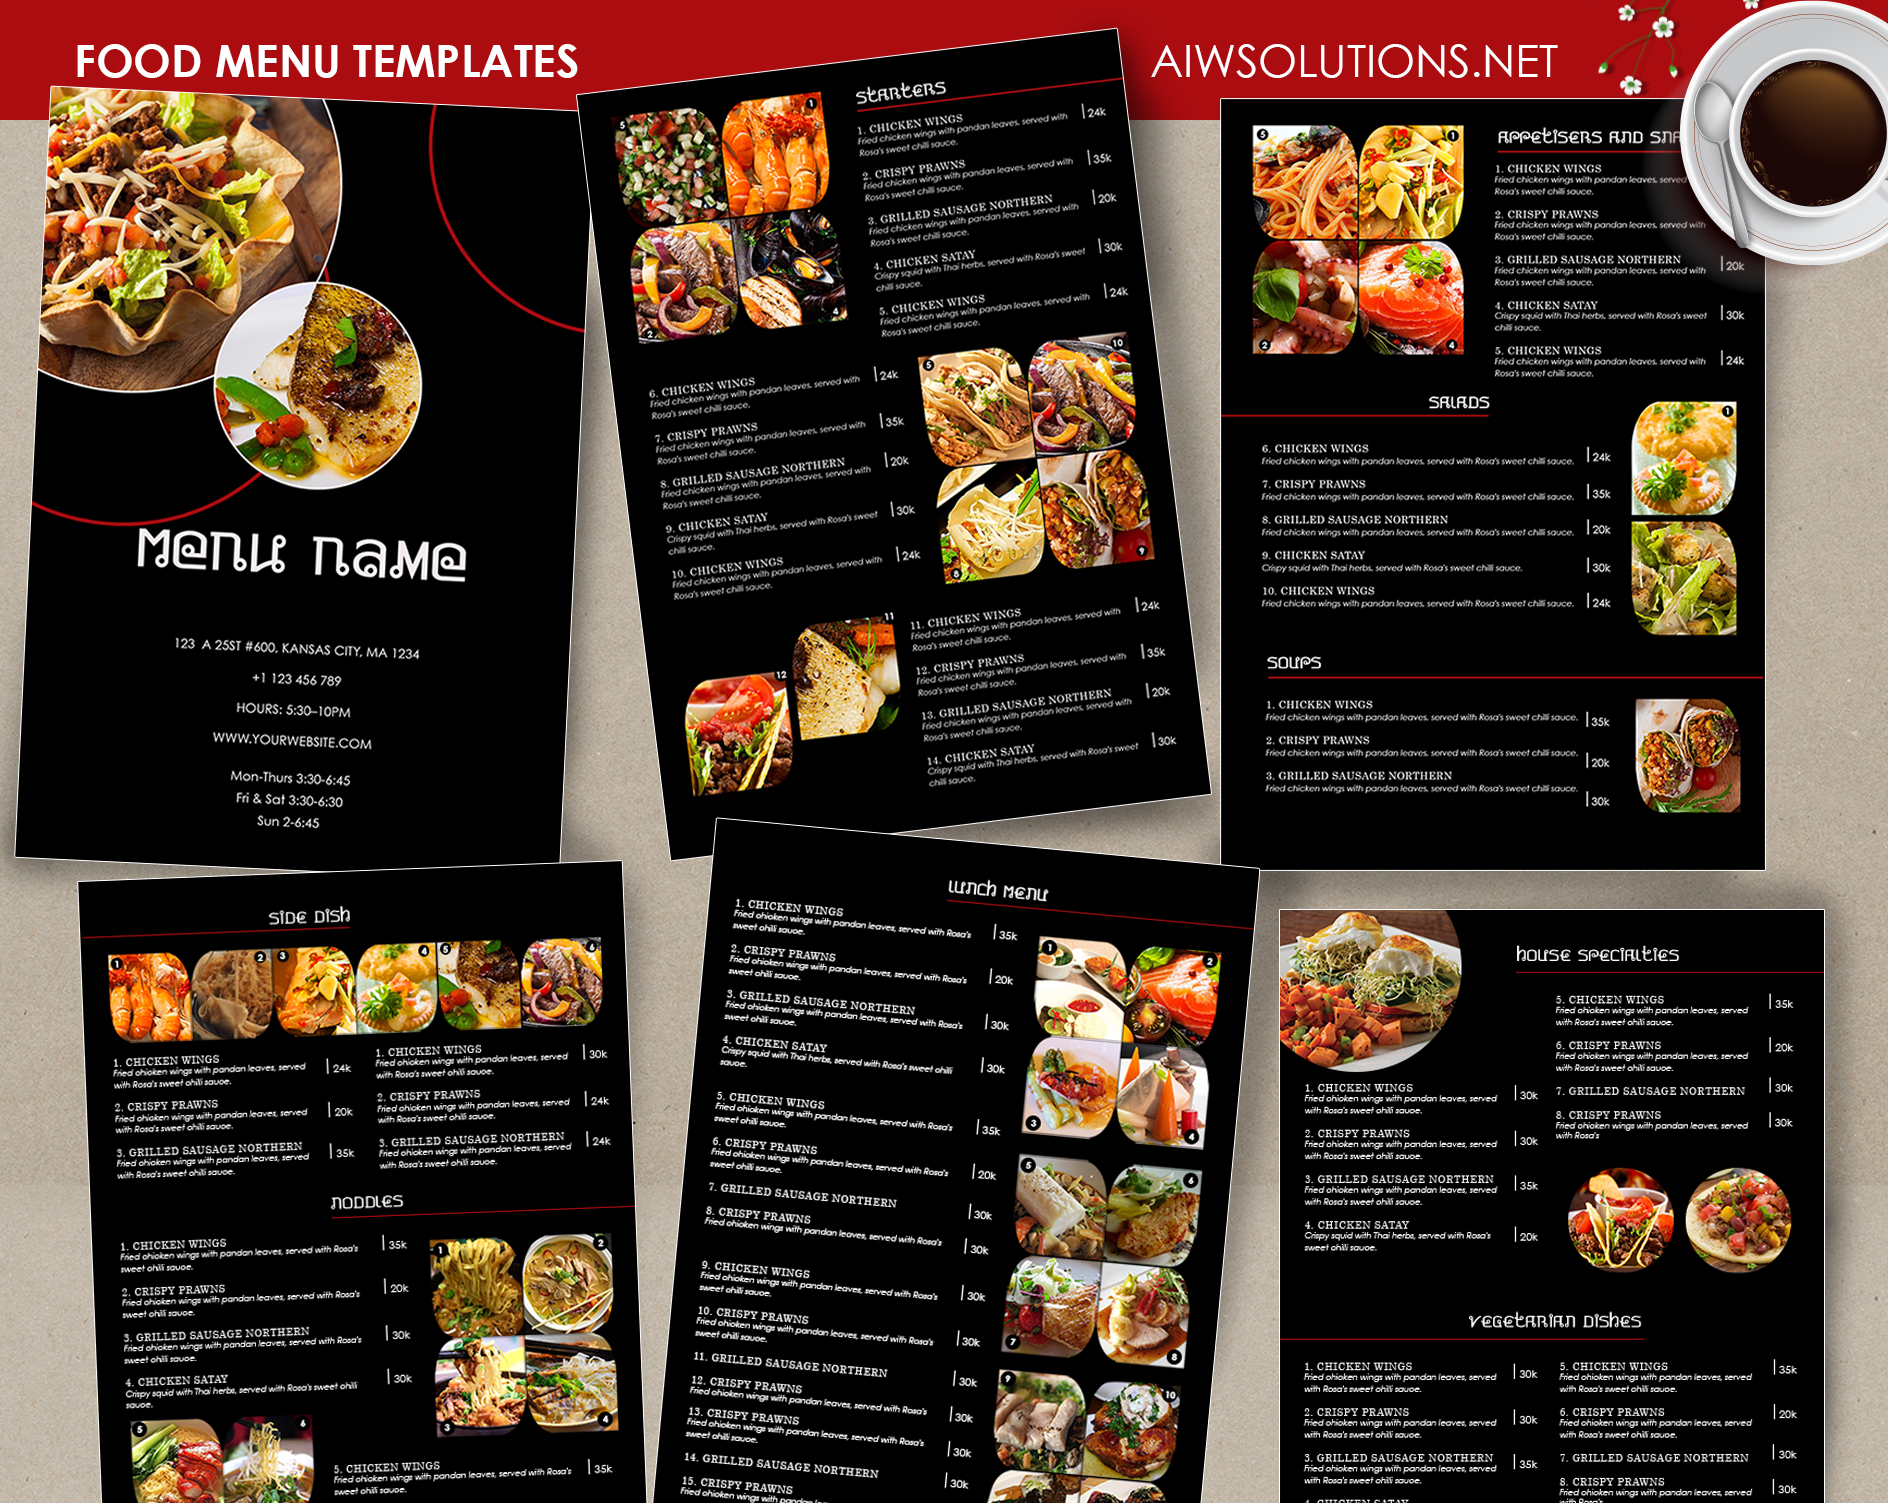 Doc15301026 How to Make a Restaurant Menu on Microsoft Word – How to Make a Restaurant Menu on Microsoft Word